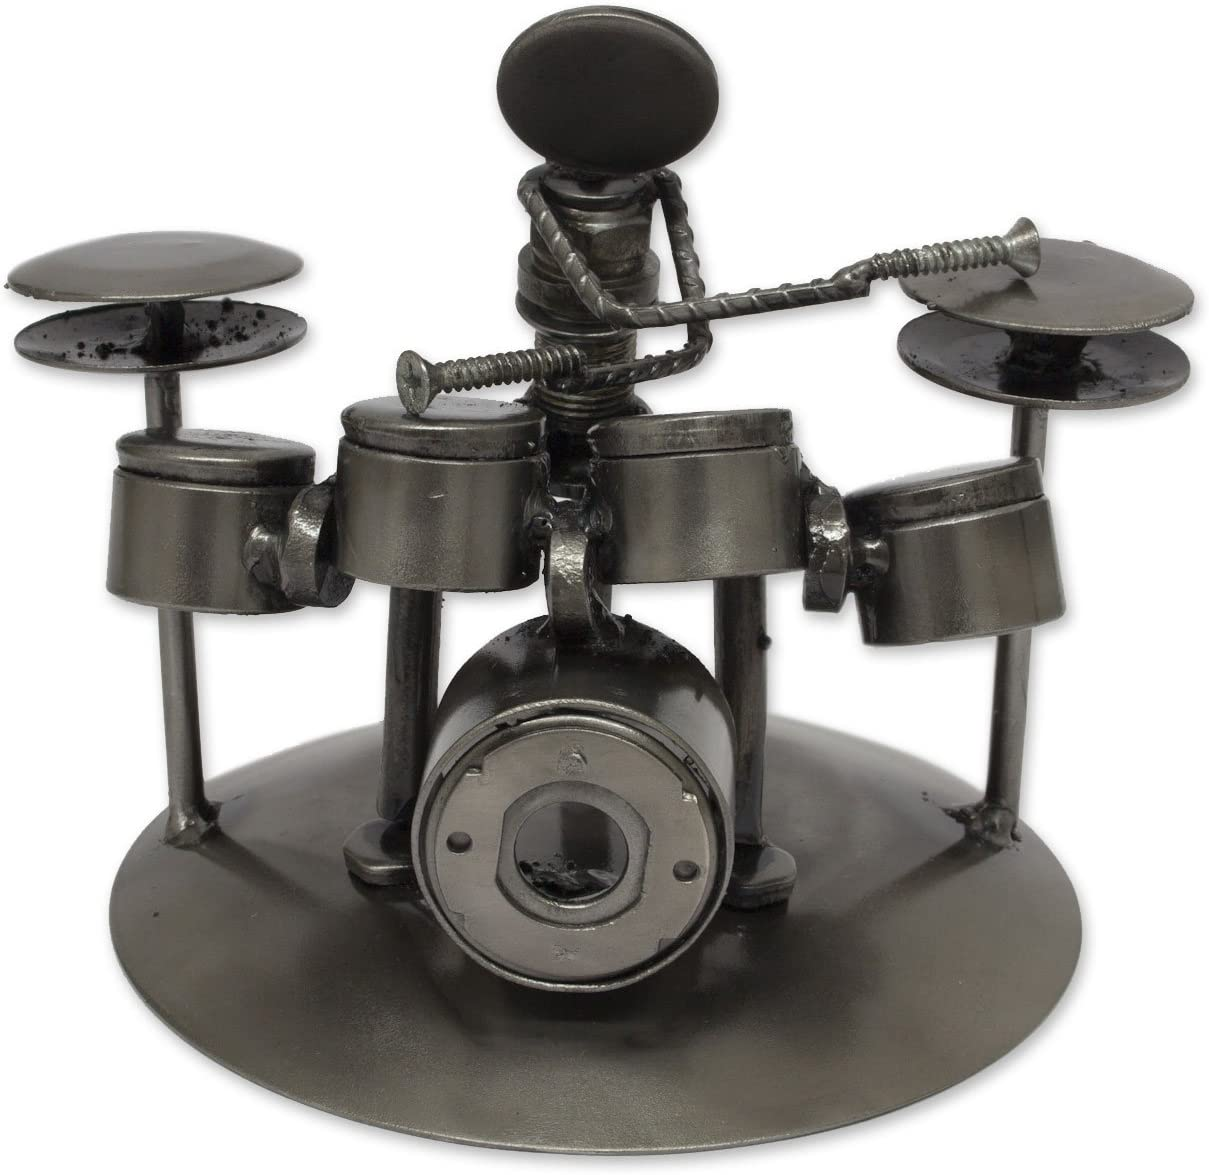 NOVICA Rustic Upcycled Auto Parts Musician Statuette, Rustic Drummer'